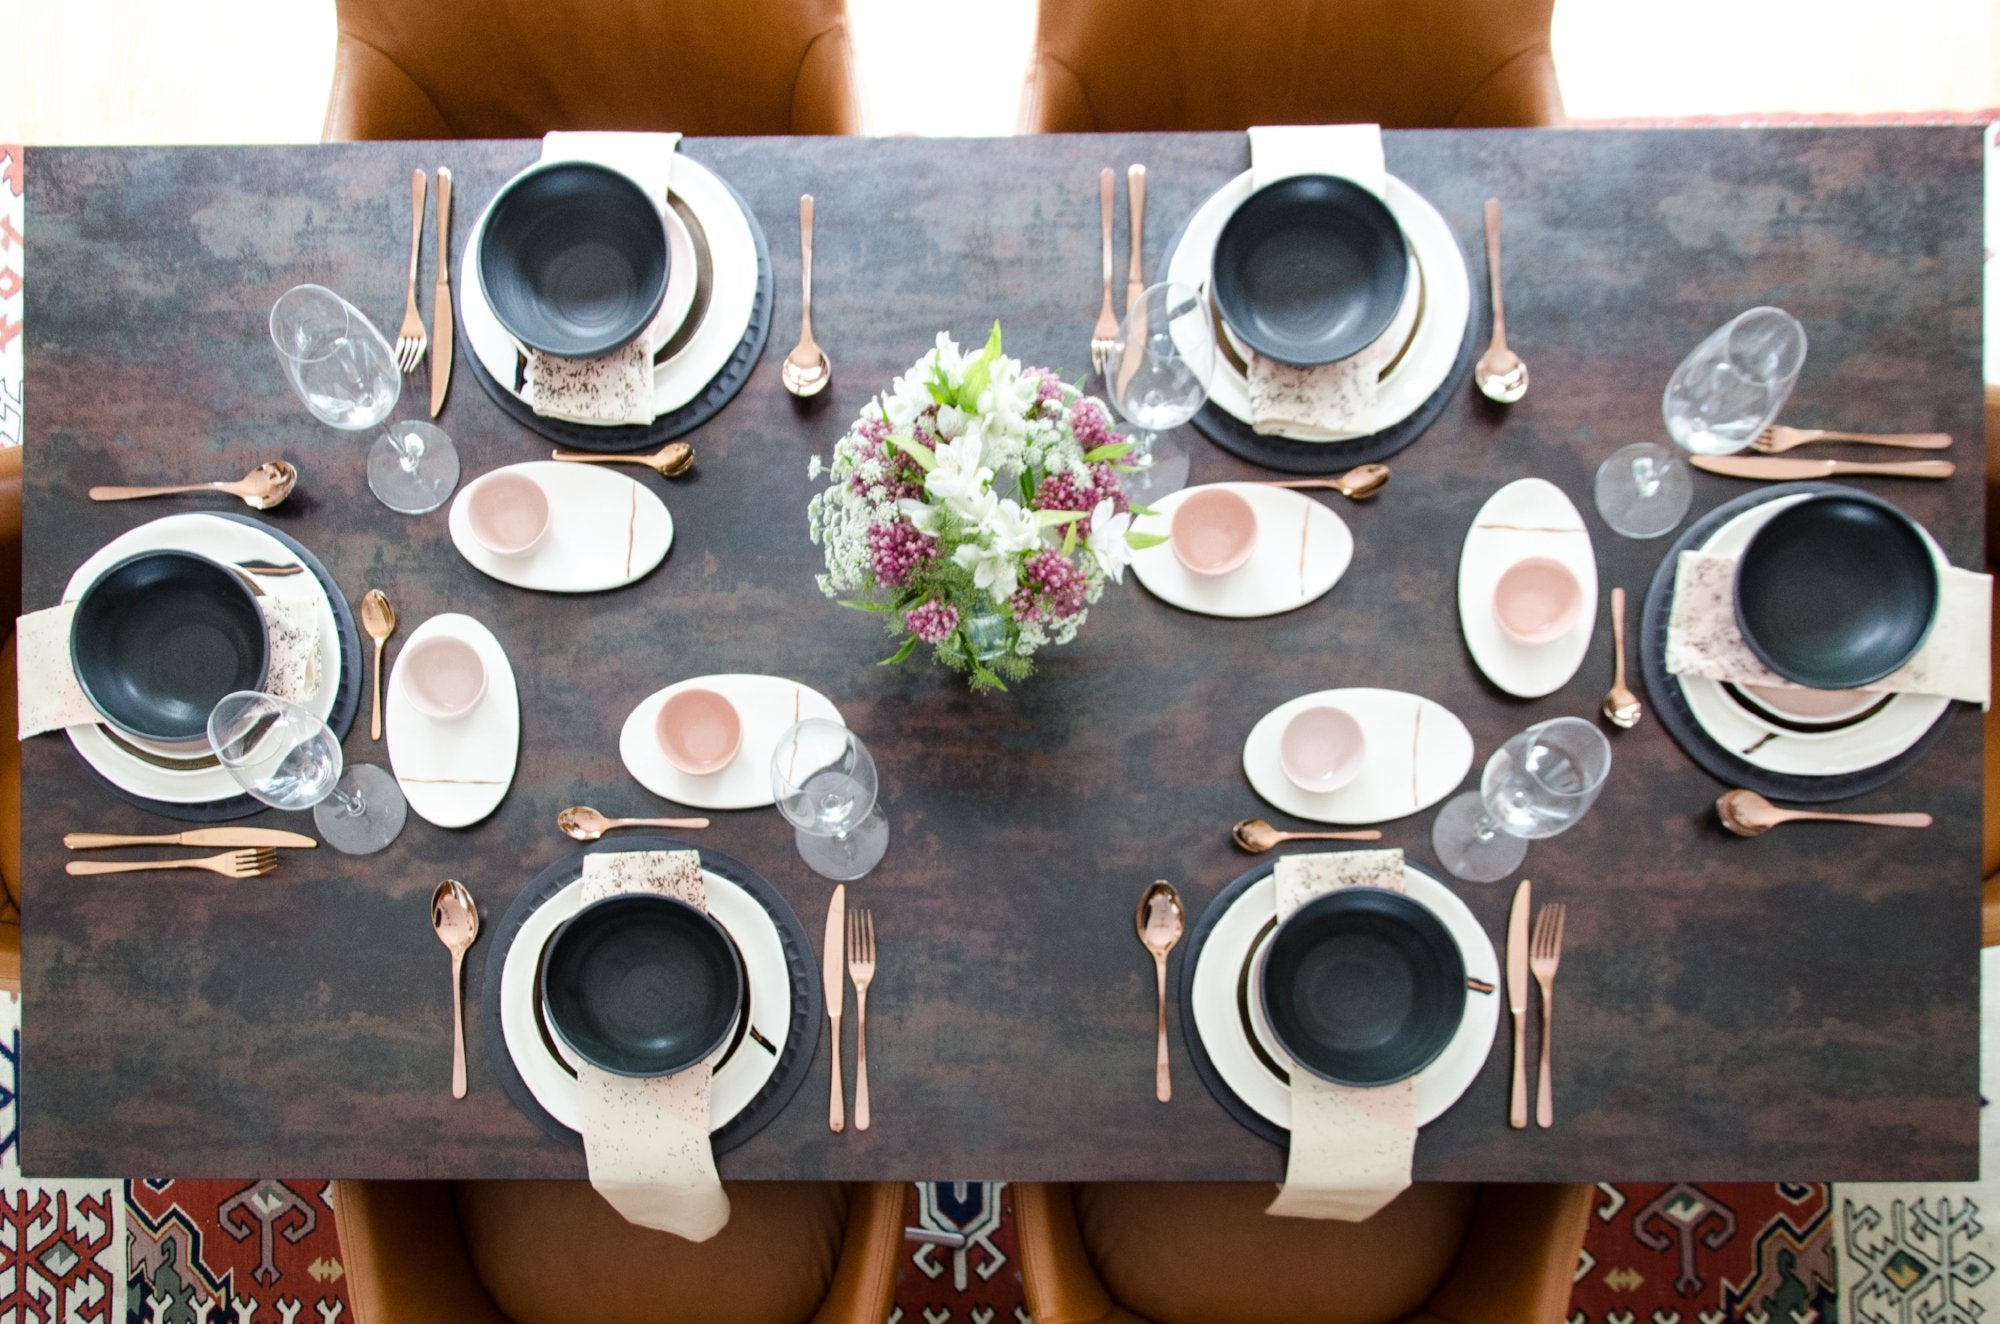 8 person tableware set